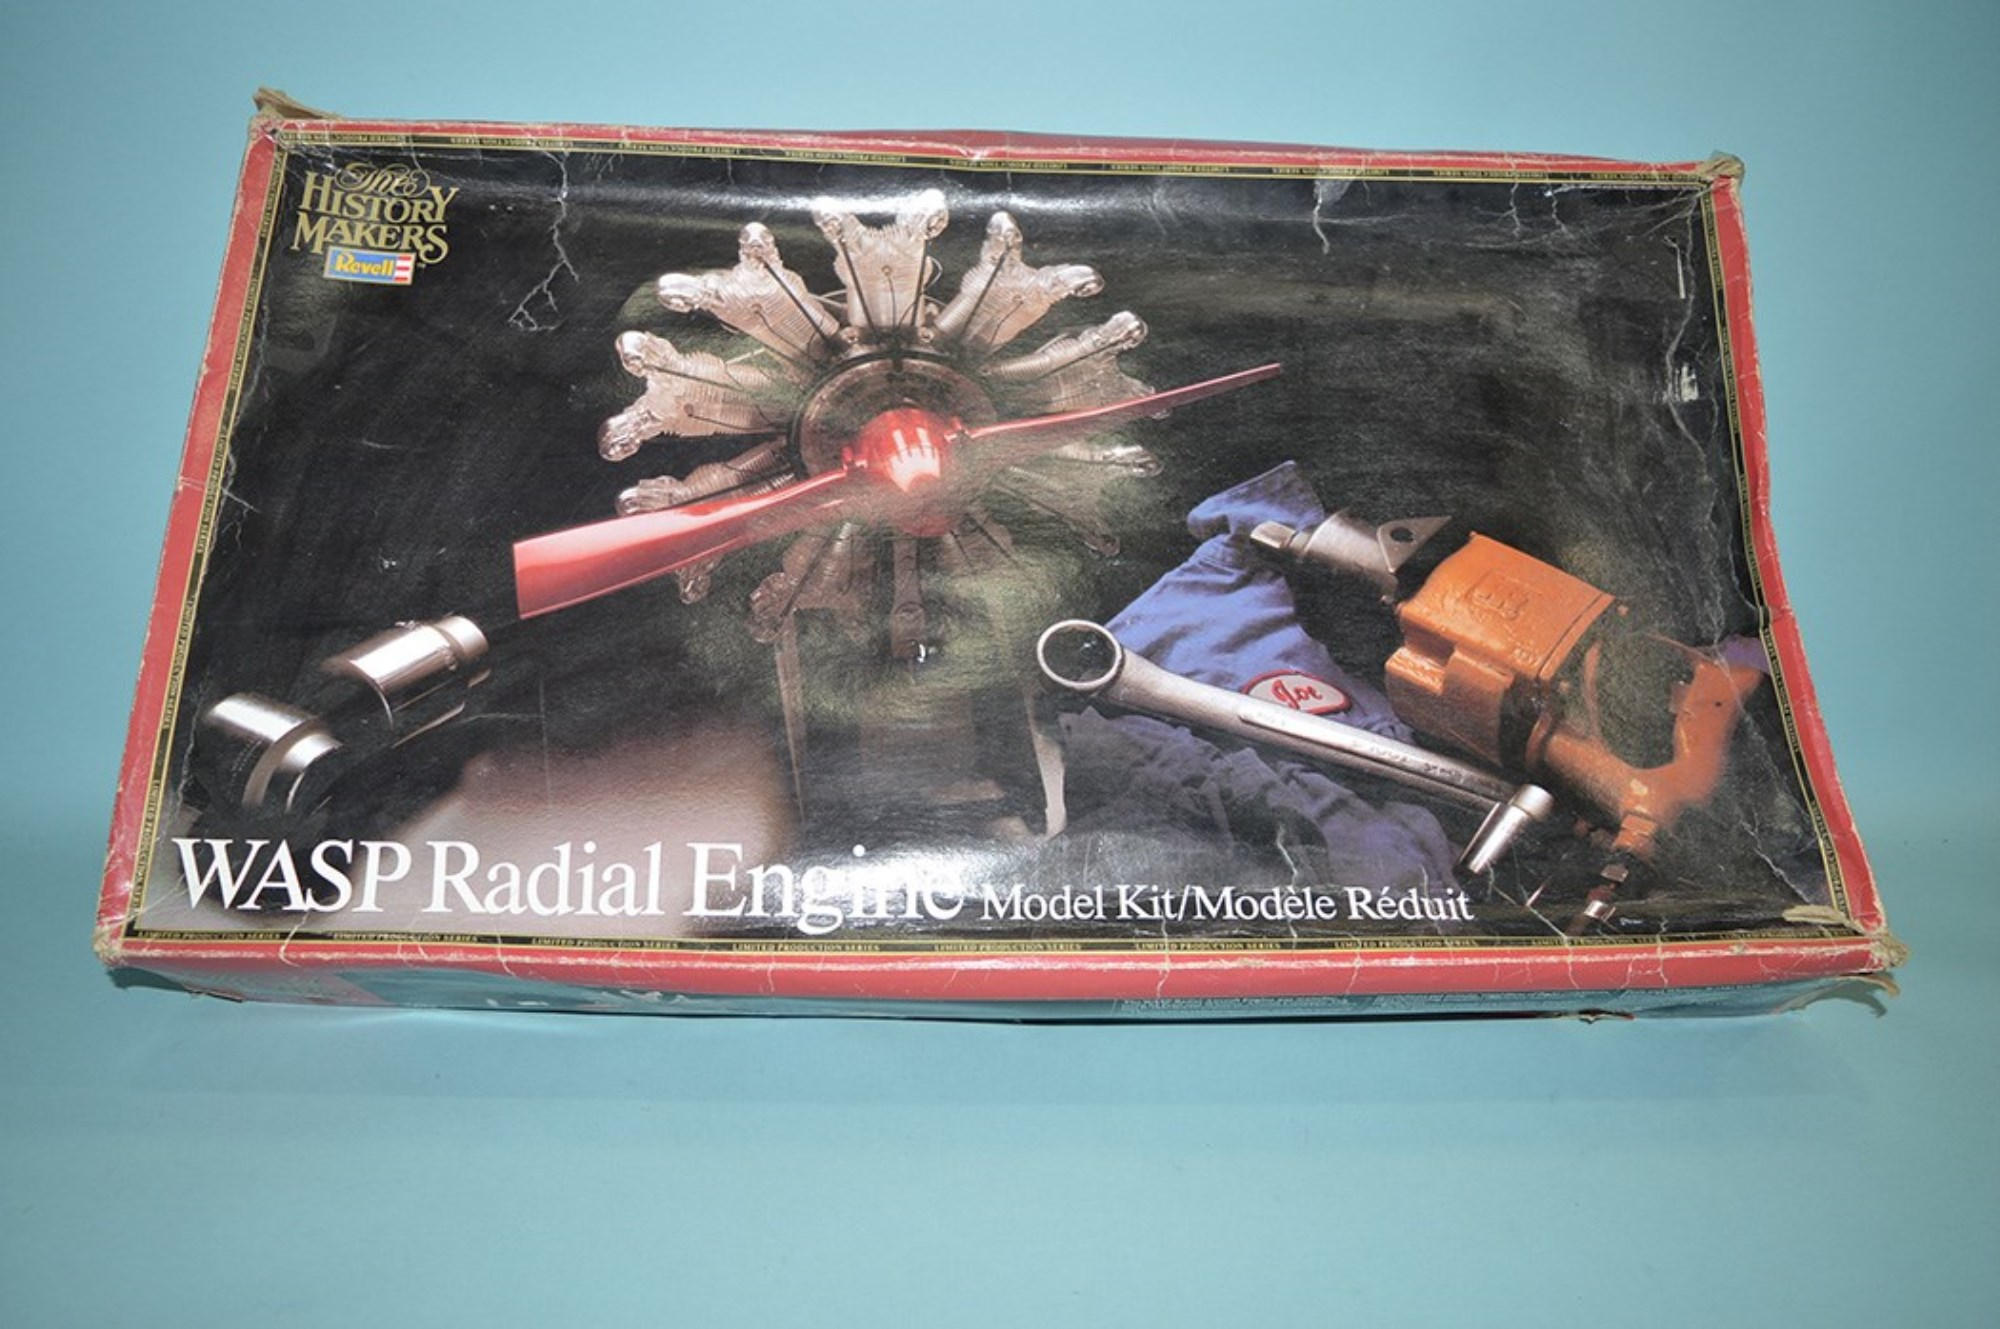 Revelle model constructor kit: The History Makers red box, WASP Radial Engine, limited production series.